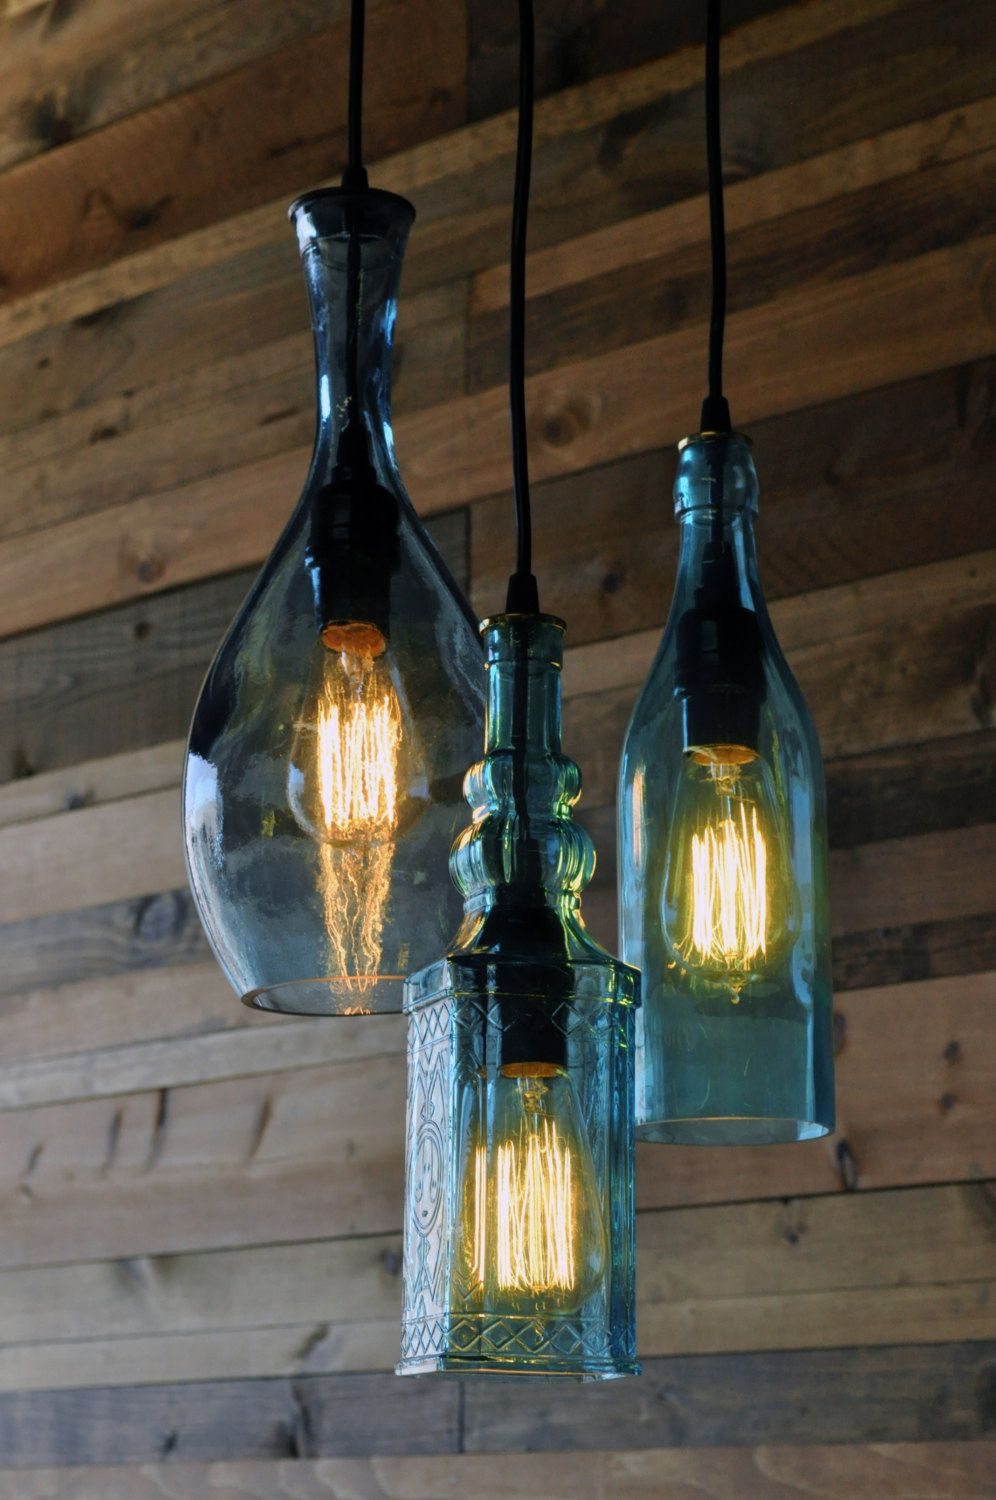 Recycled bottle chandelier the harmony by moonshinelamp on etsy recycled bottle chandelier the harmony by moonshinelamp on etsy 39500 aloadofball Choice Image